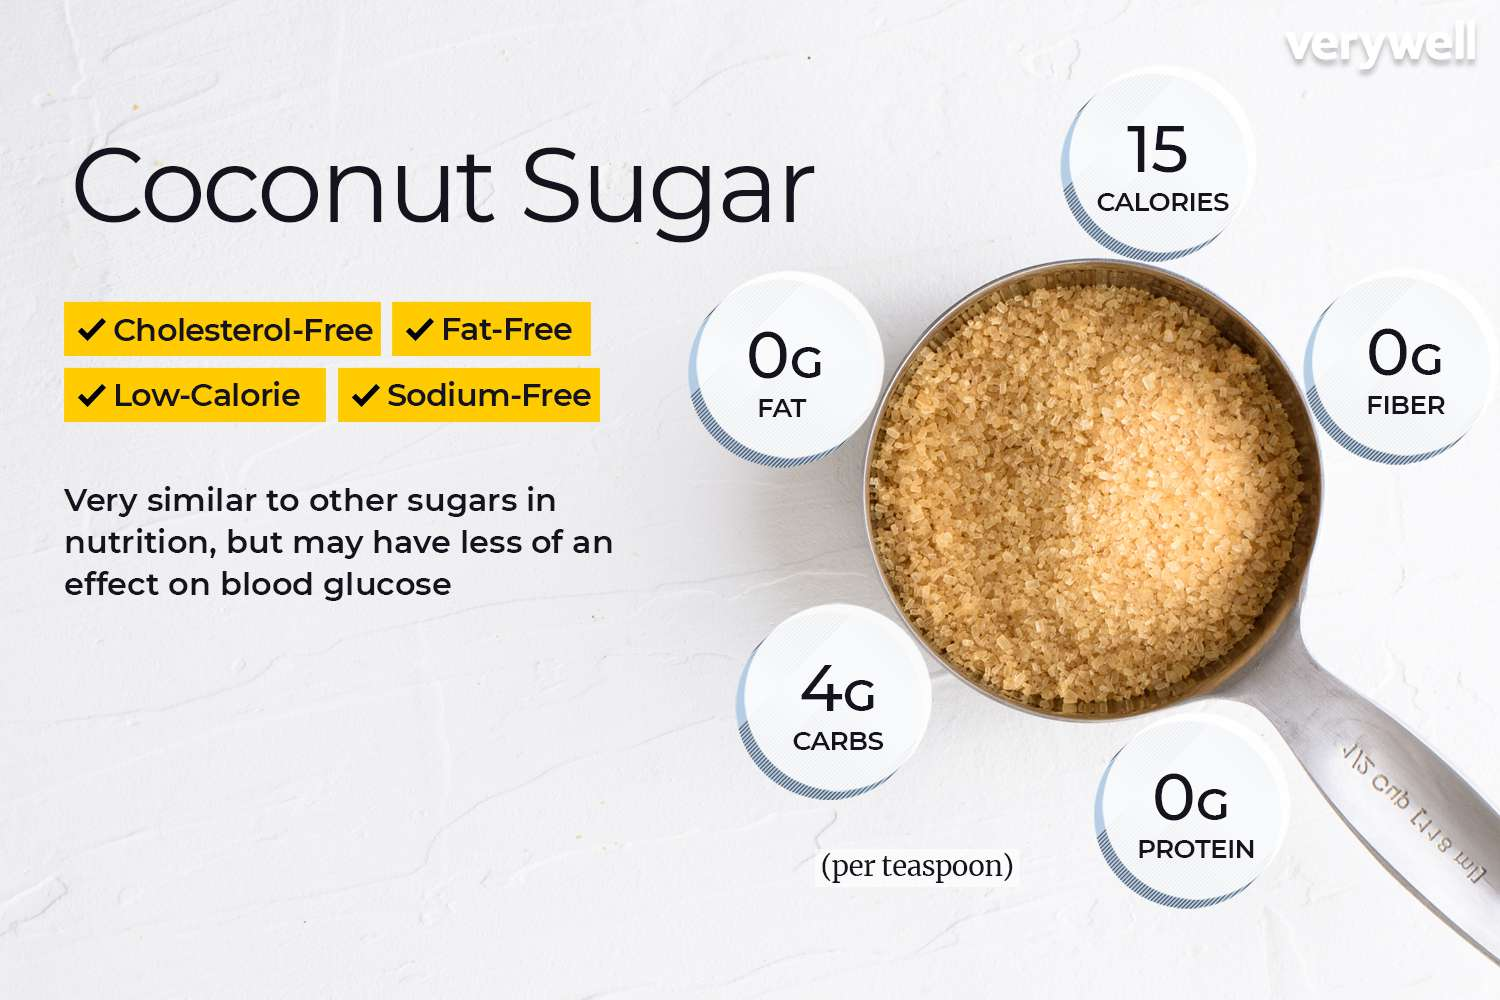 Is Coconut Sugar Really Low Carb?